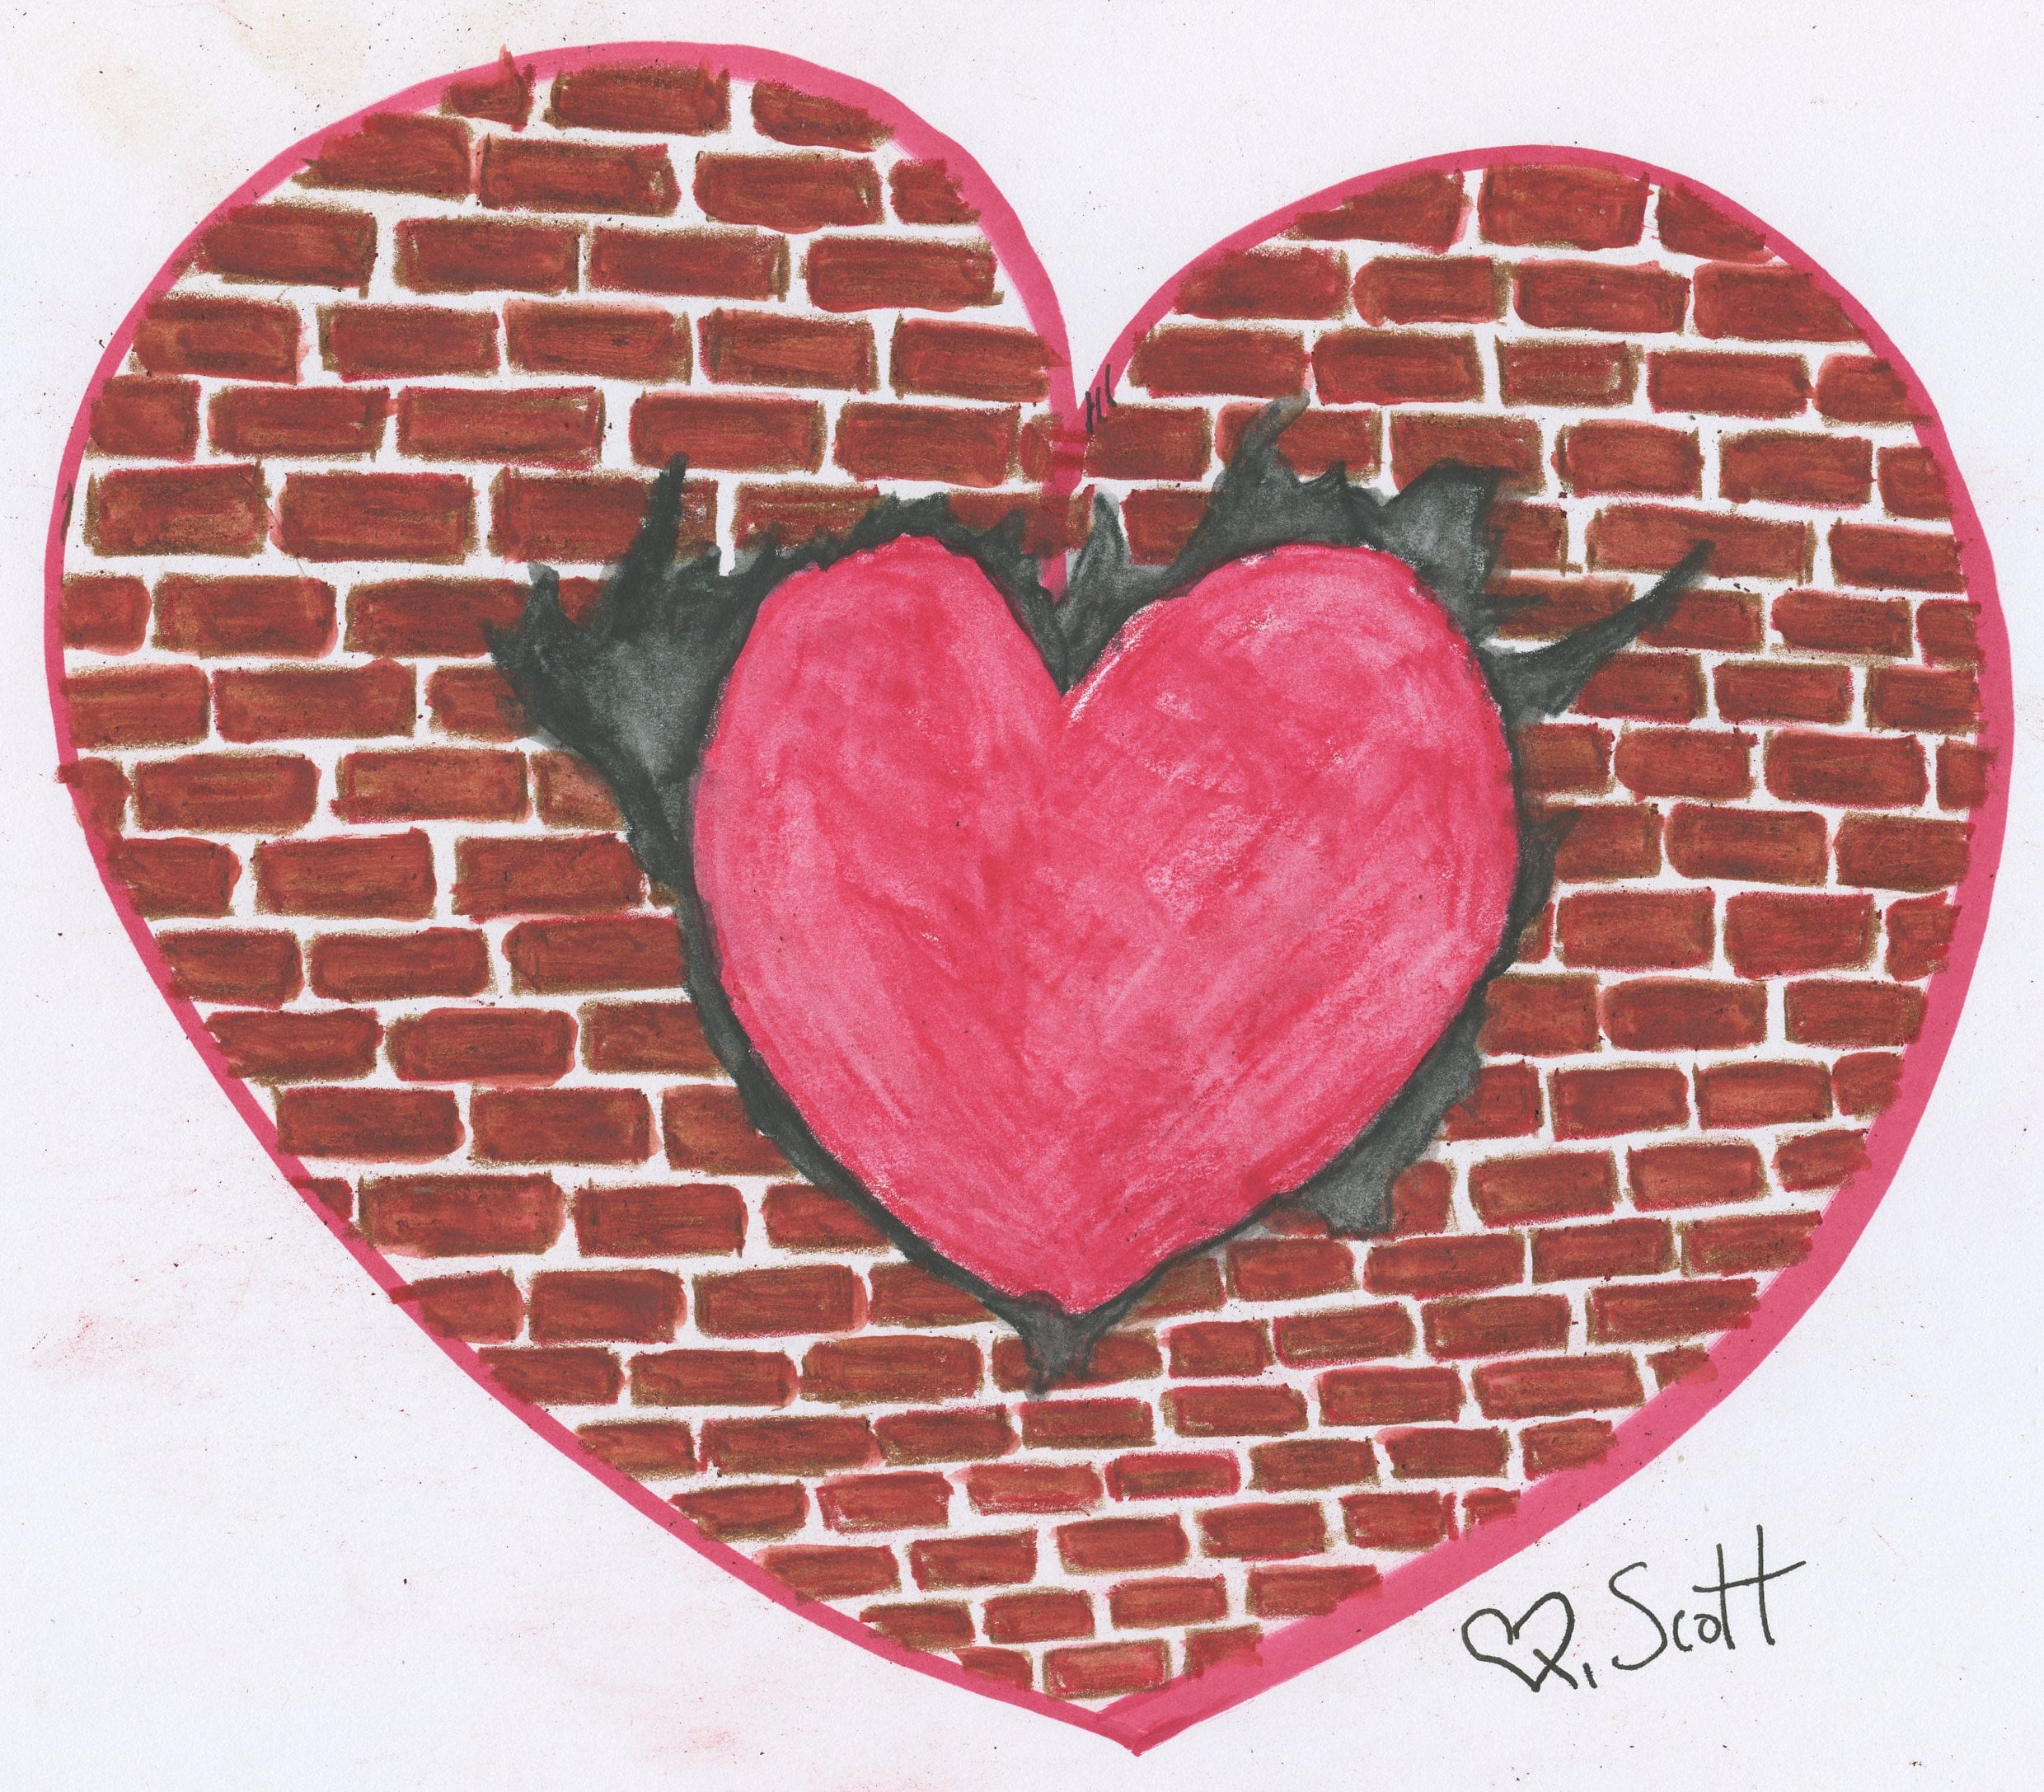 My heart is going to break through this old wall we call life.